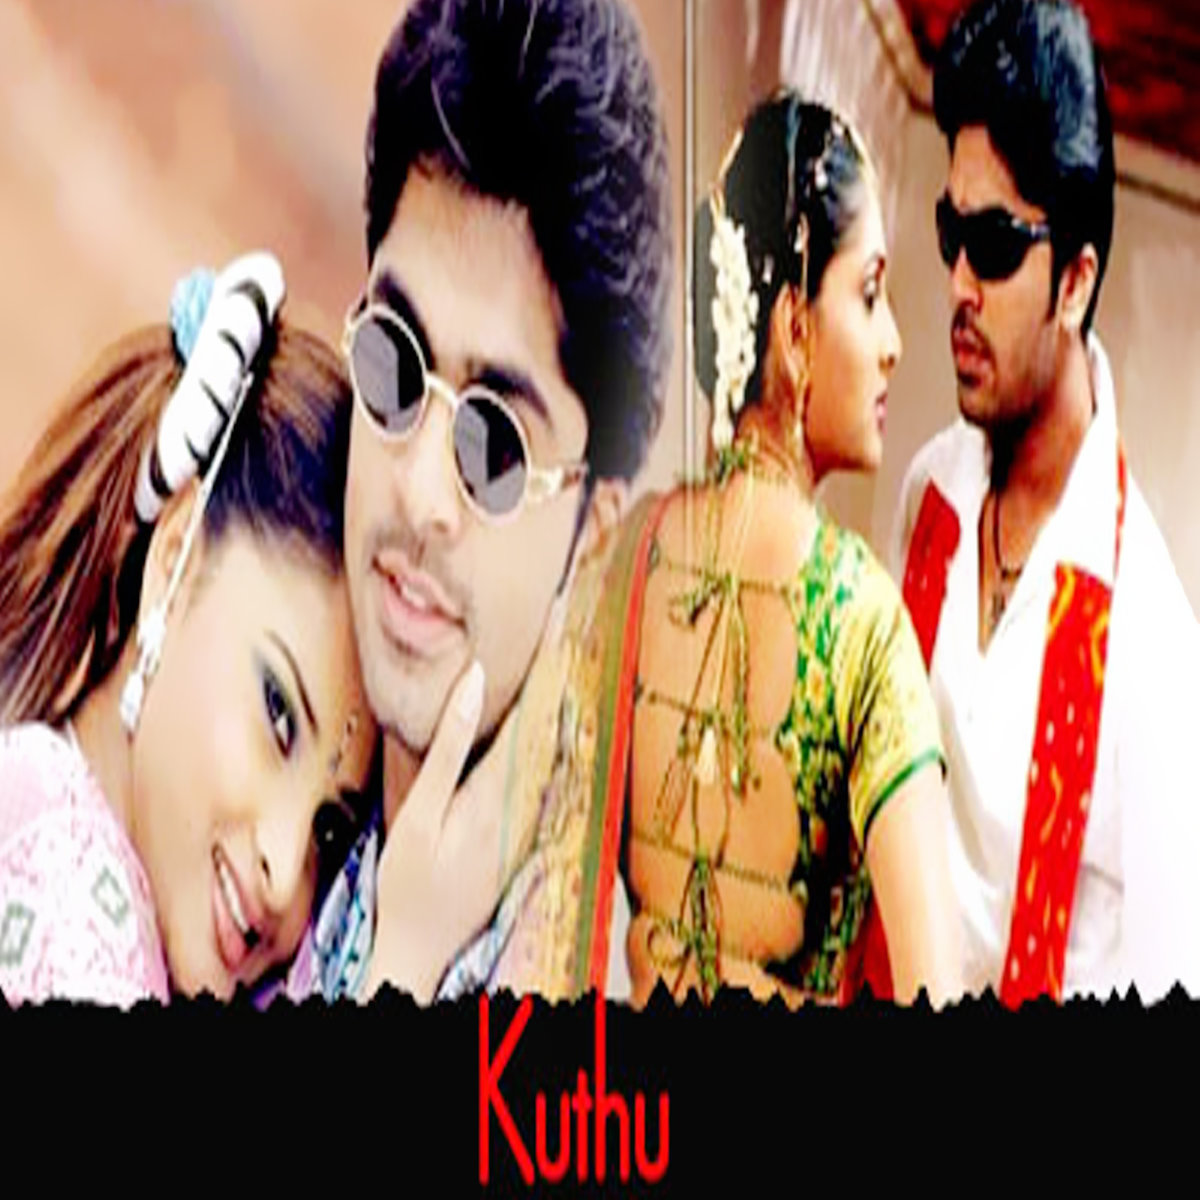 All Remix Songs Tamil Kuthu 2: Kuthu Original Motion Picture Soundtrack